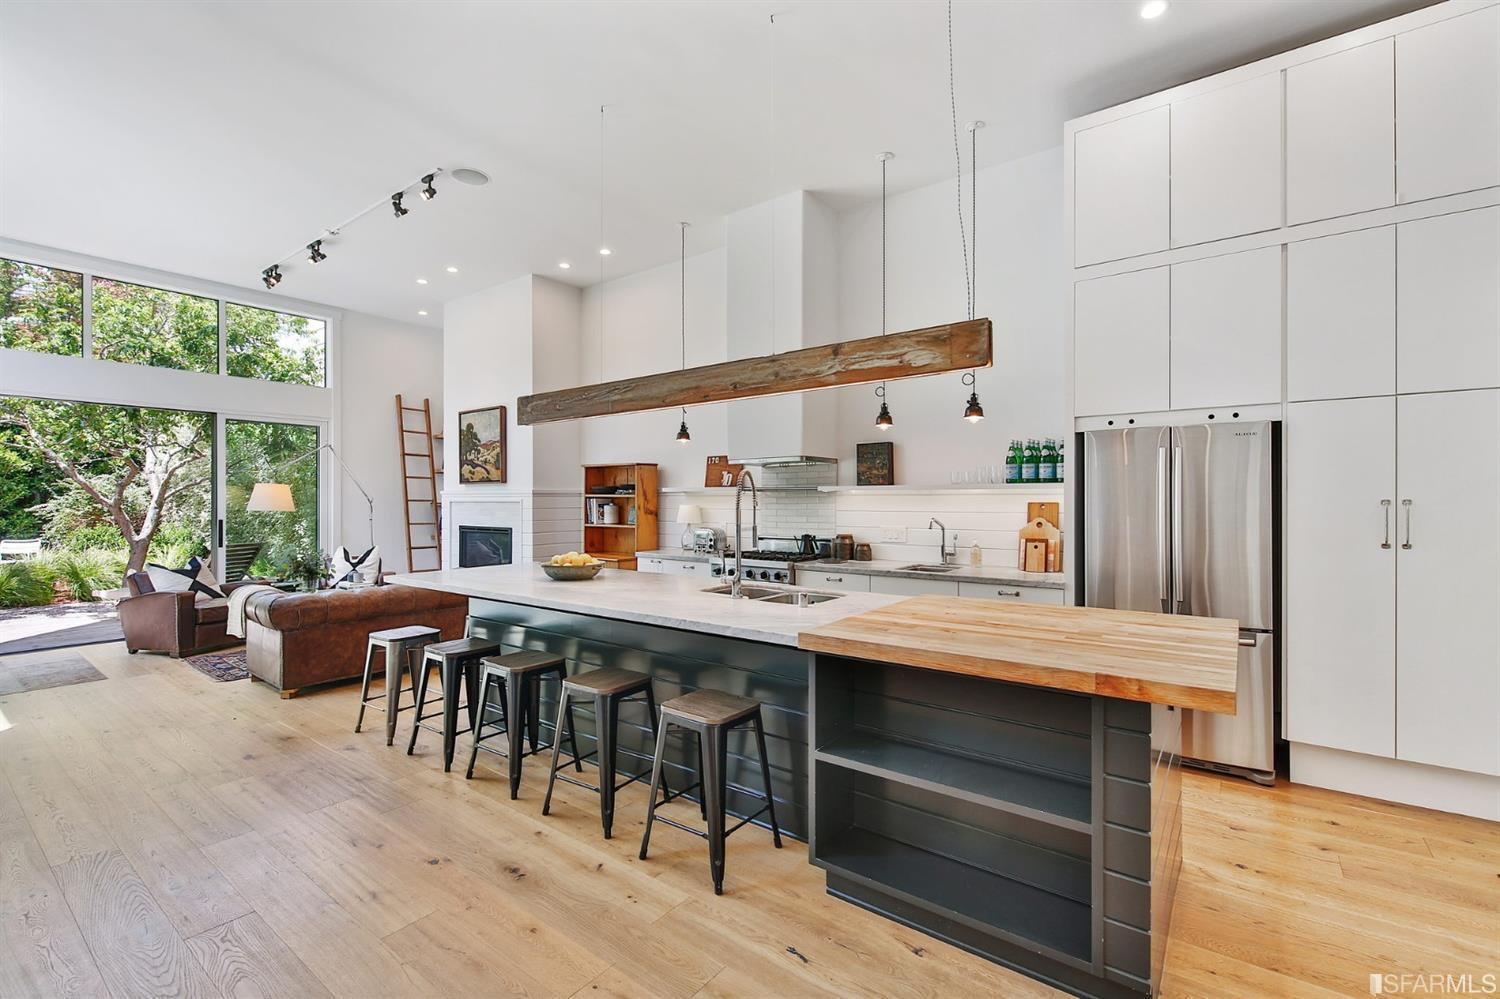 Chic white and wood kitchen